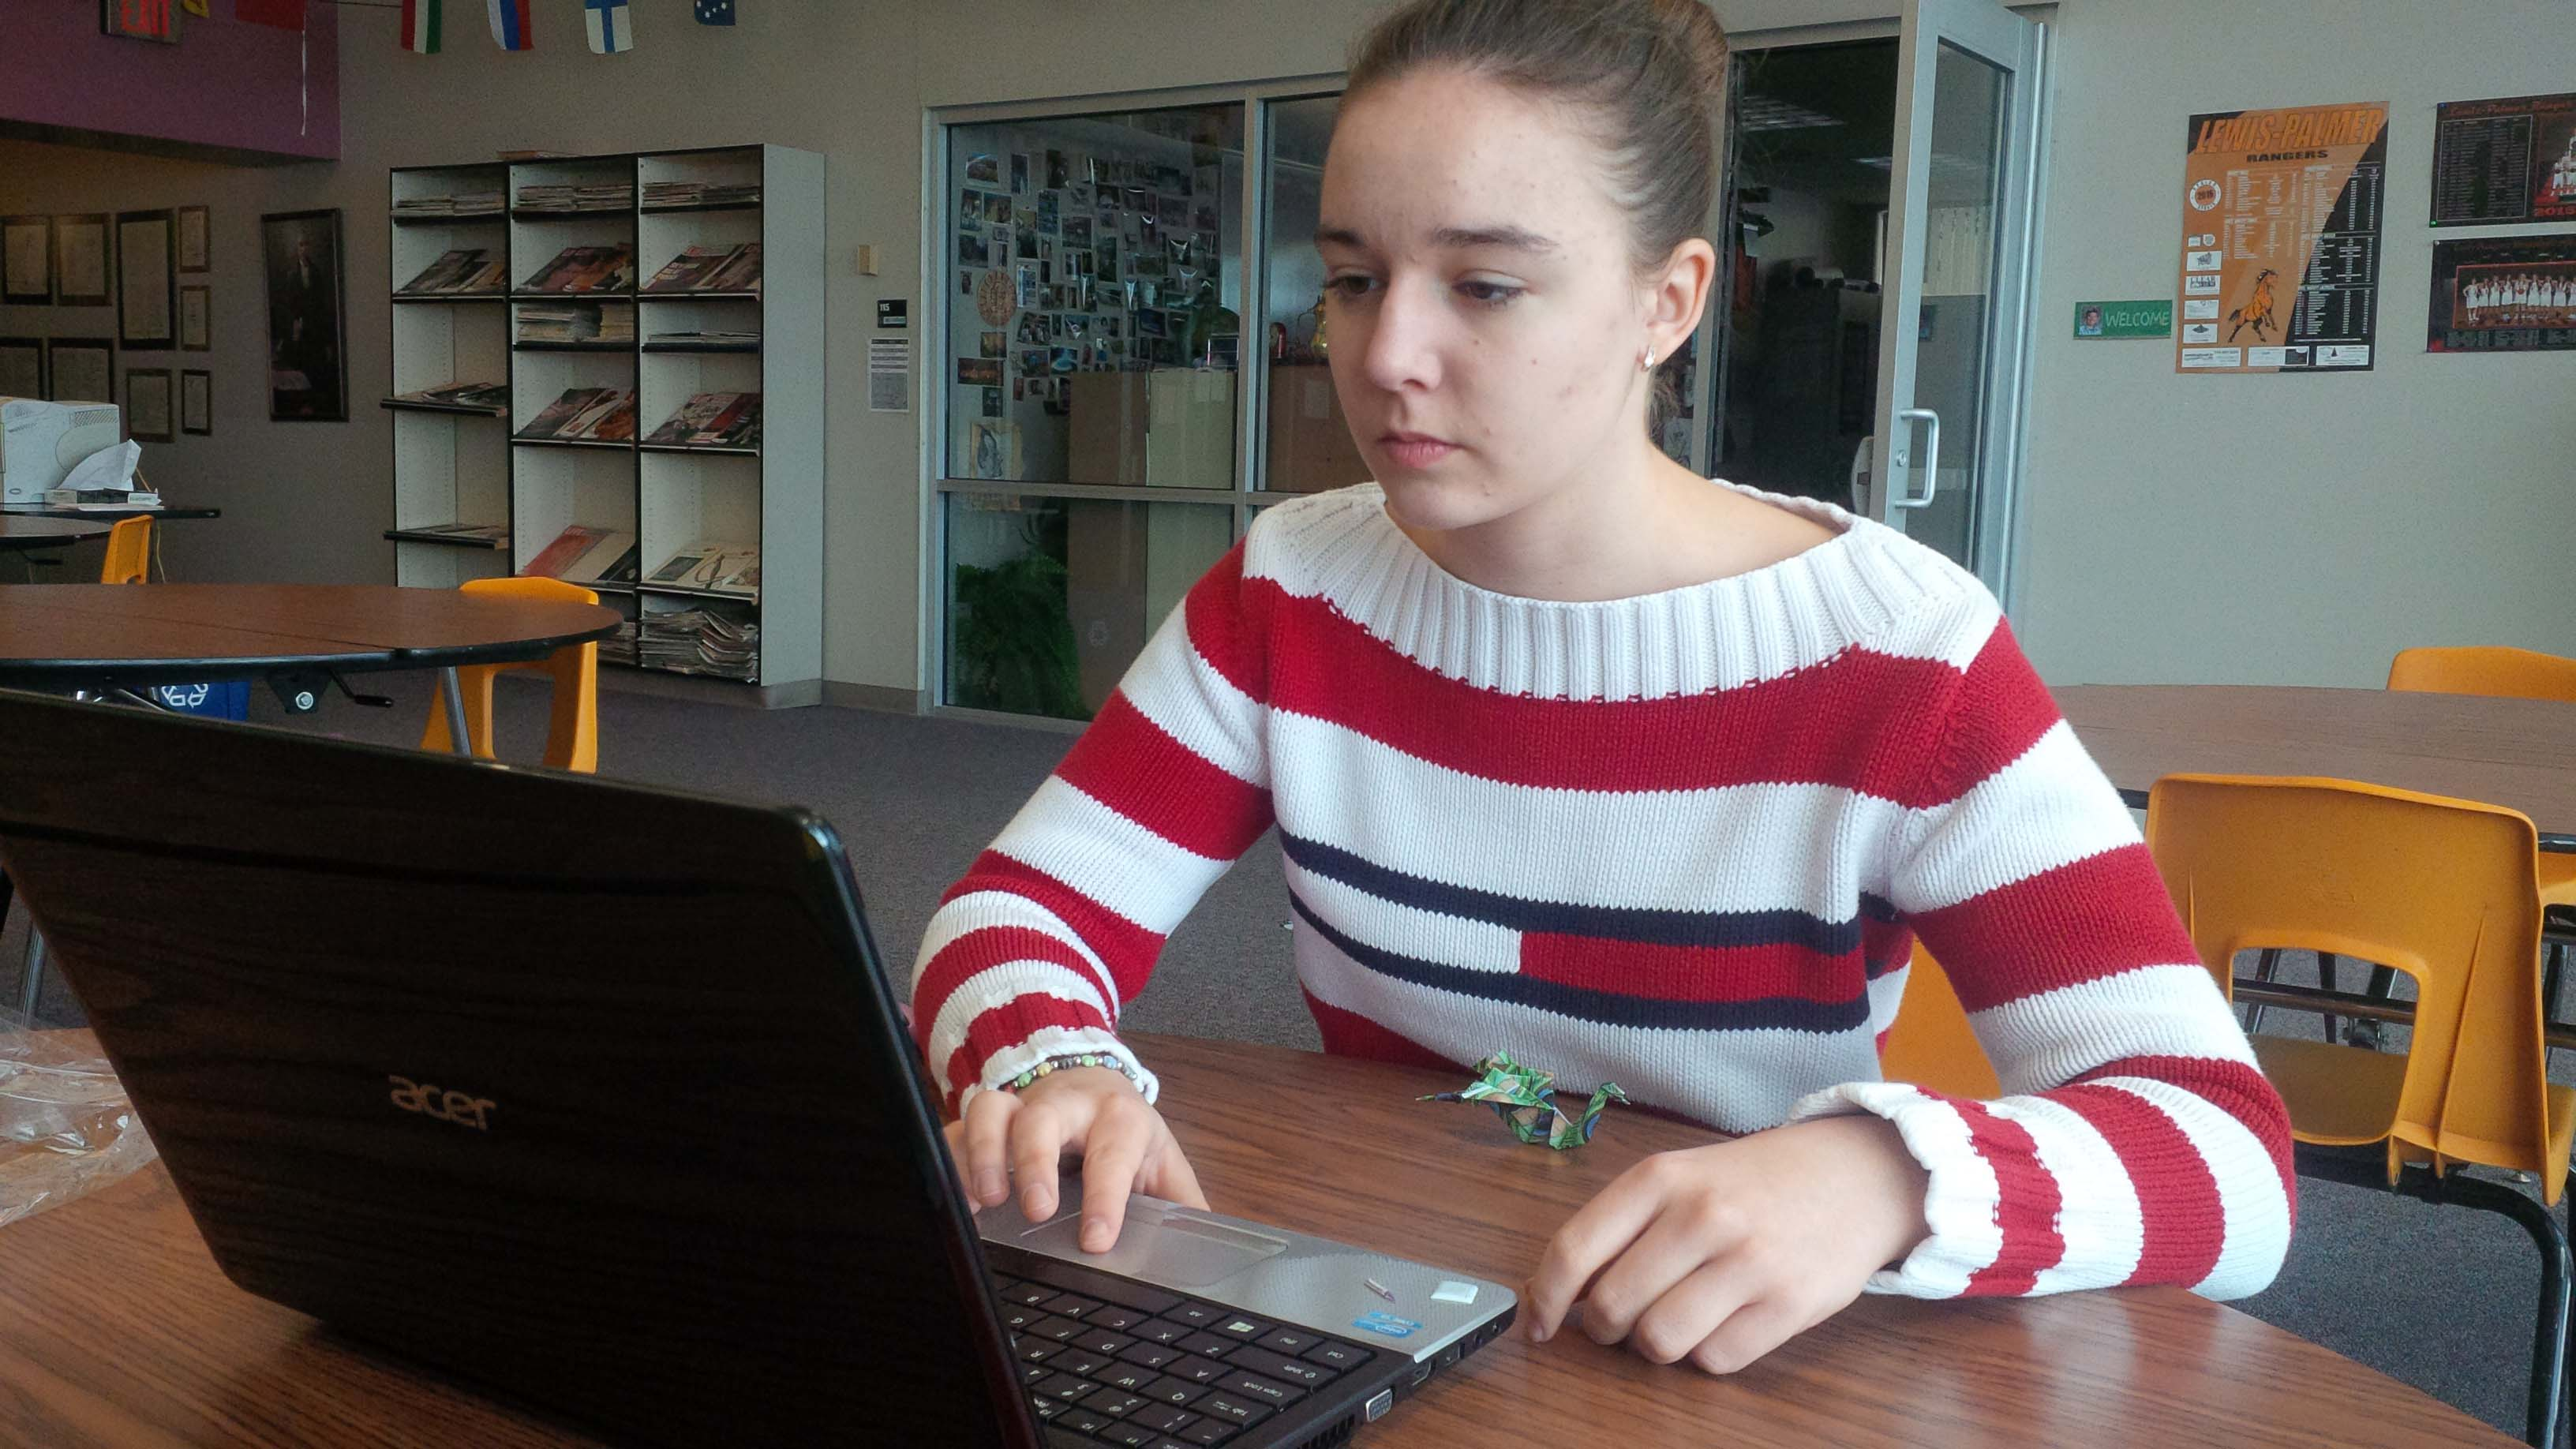 Sofia Kirienko, 12, solemnly checks her inbox in anticipation of an admissions message